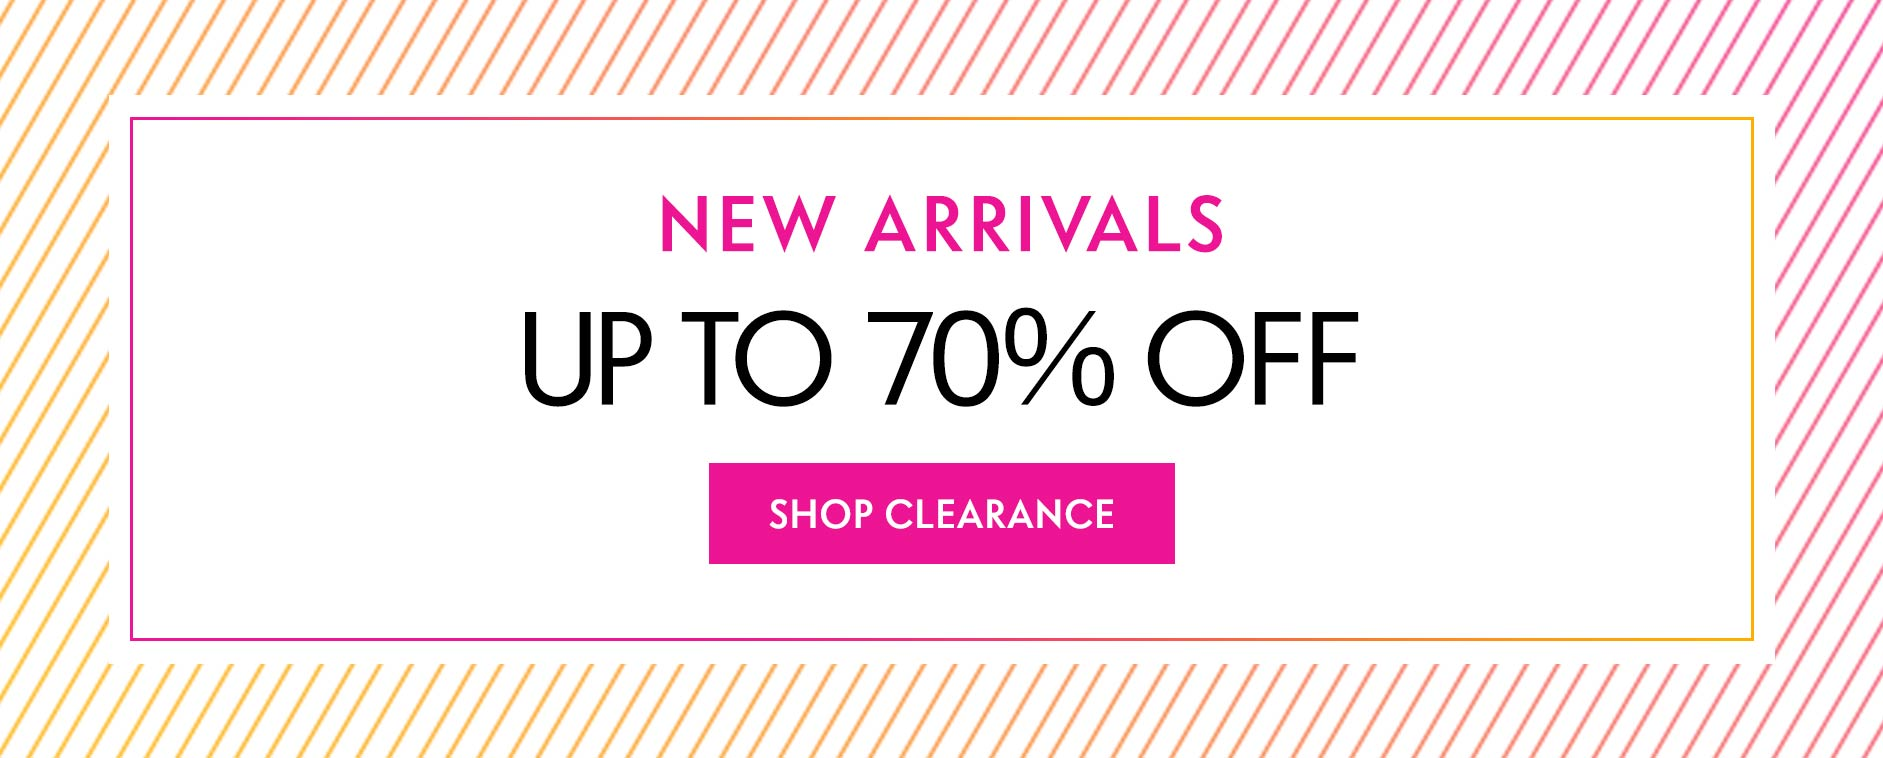 New arrivals! Up to 70% off